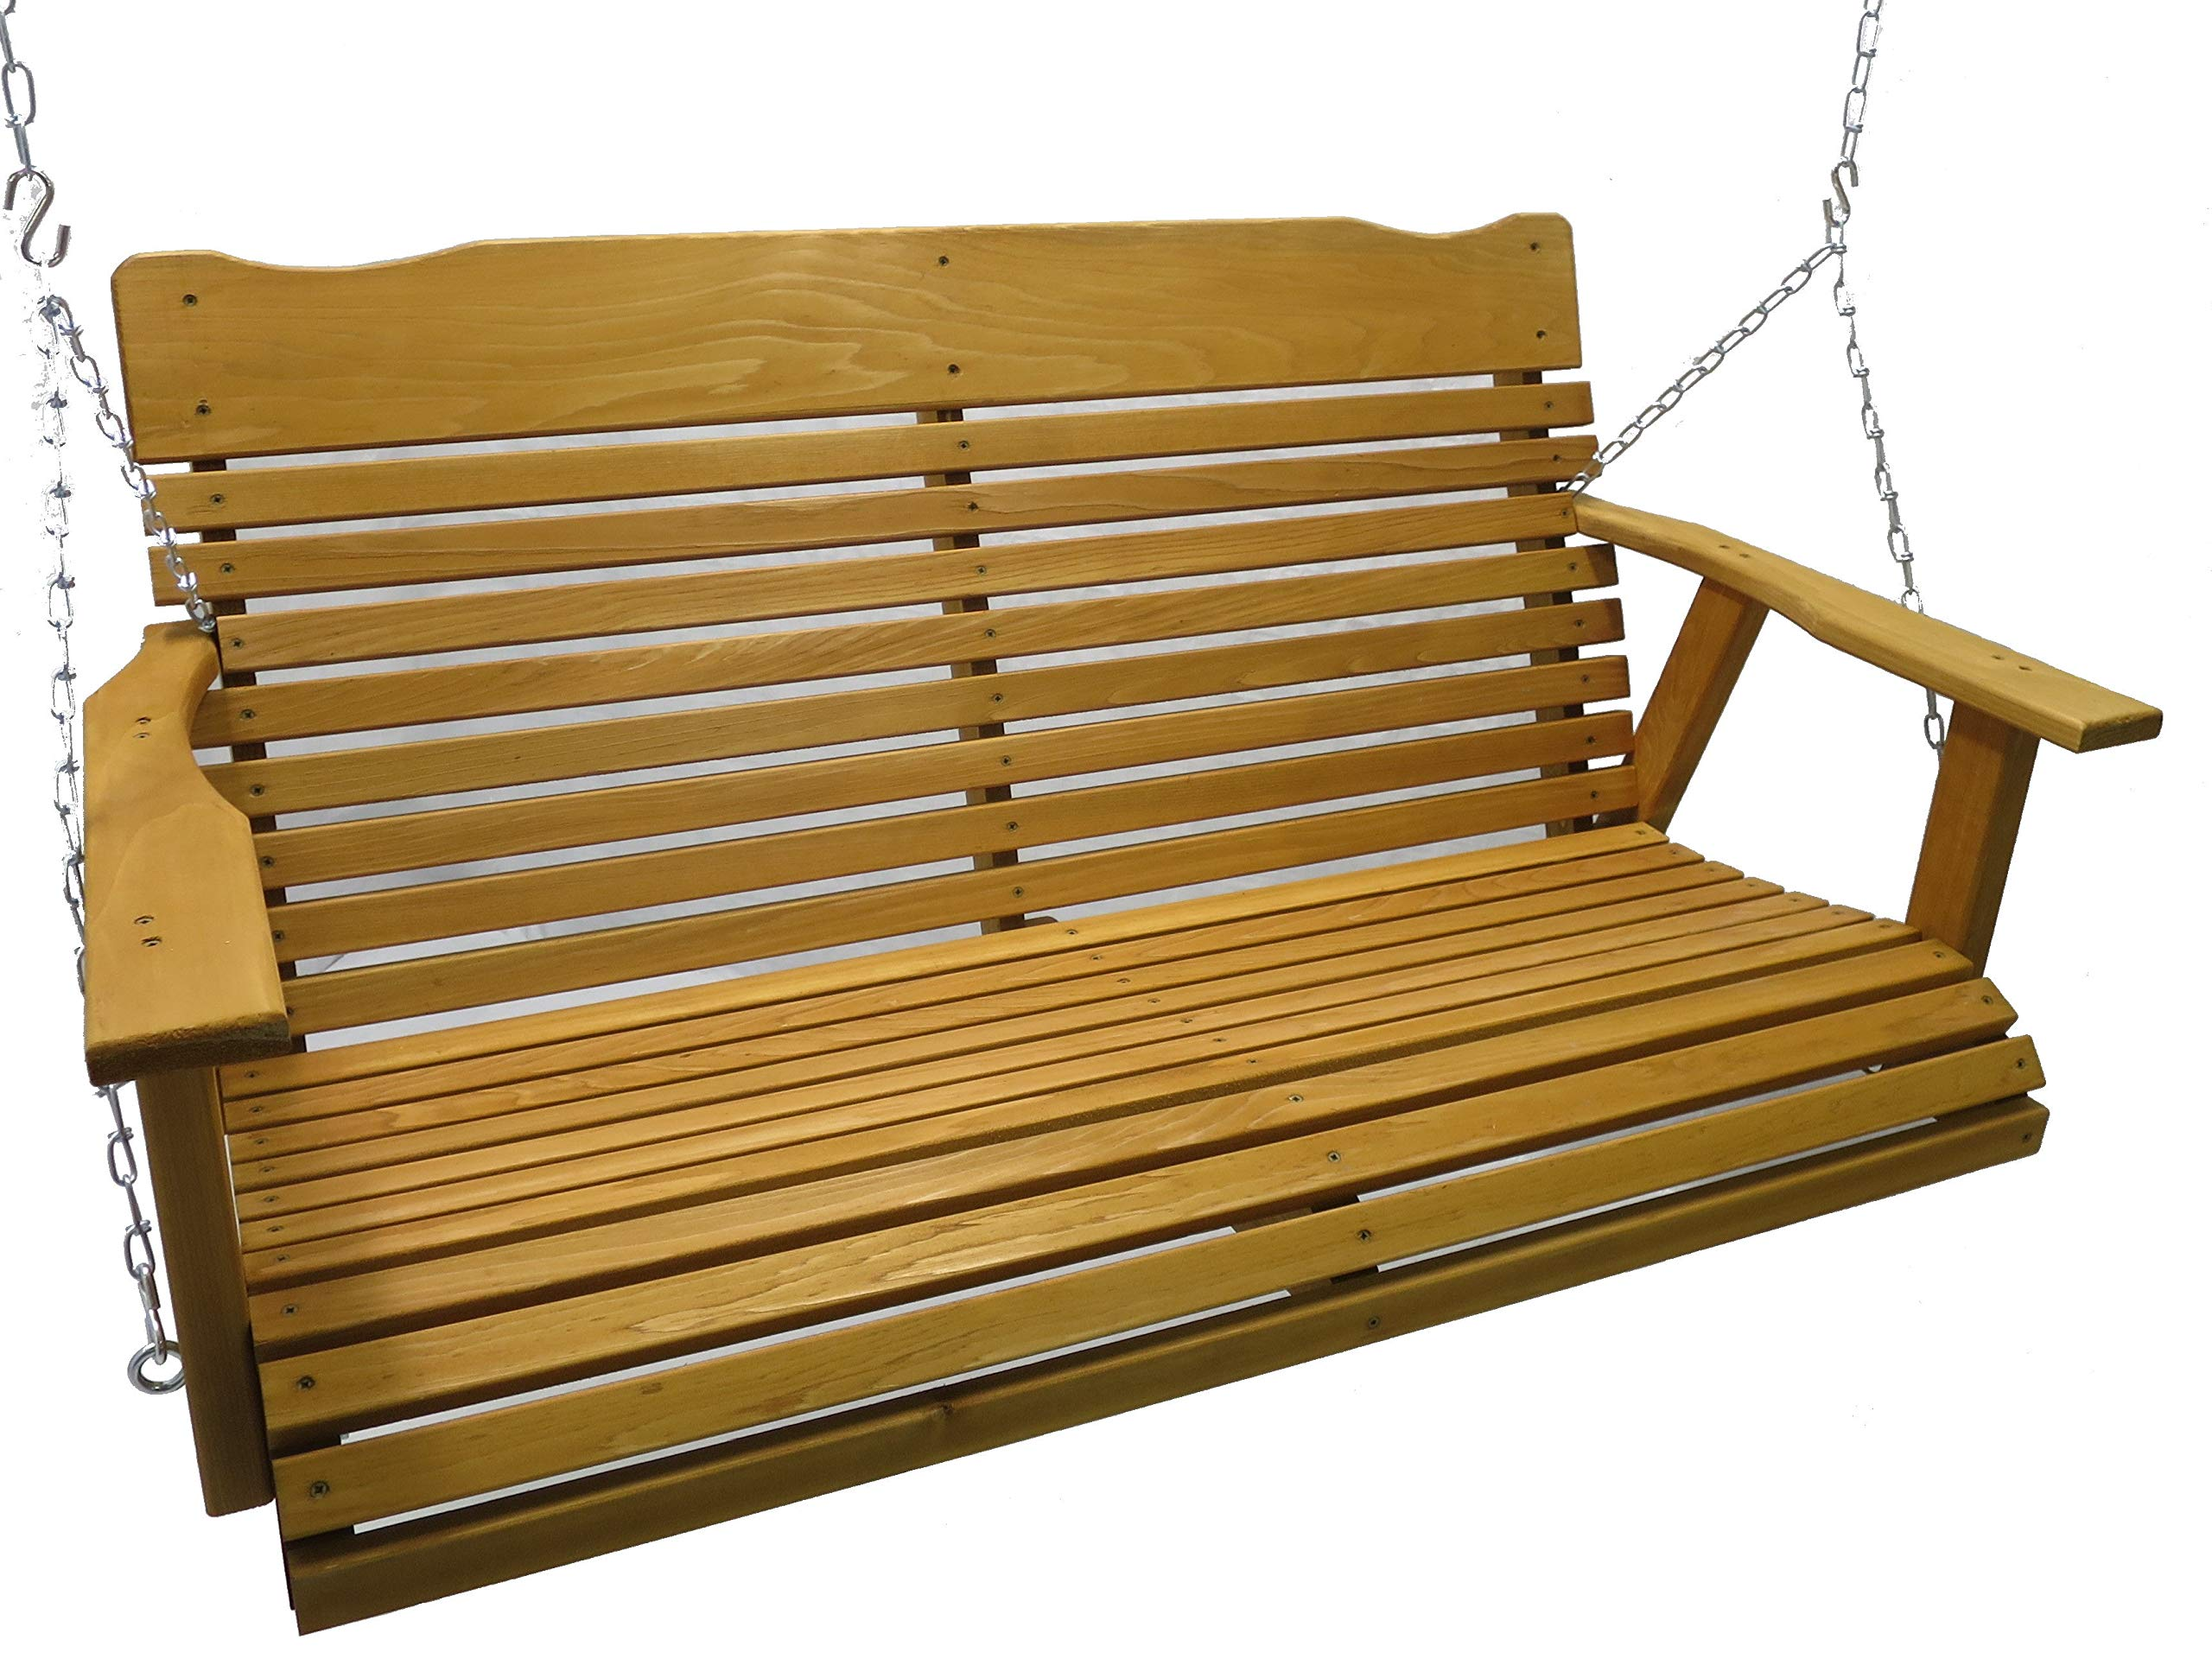 Kilmer Creek 4' Cedar Porch Swing W/stained Finish, Amish Crafted - Includes Chain & Springs by Kilmer Creek